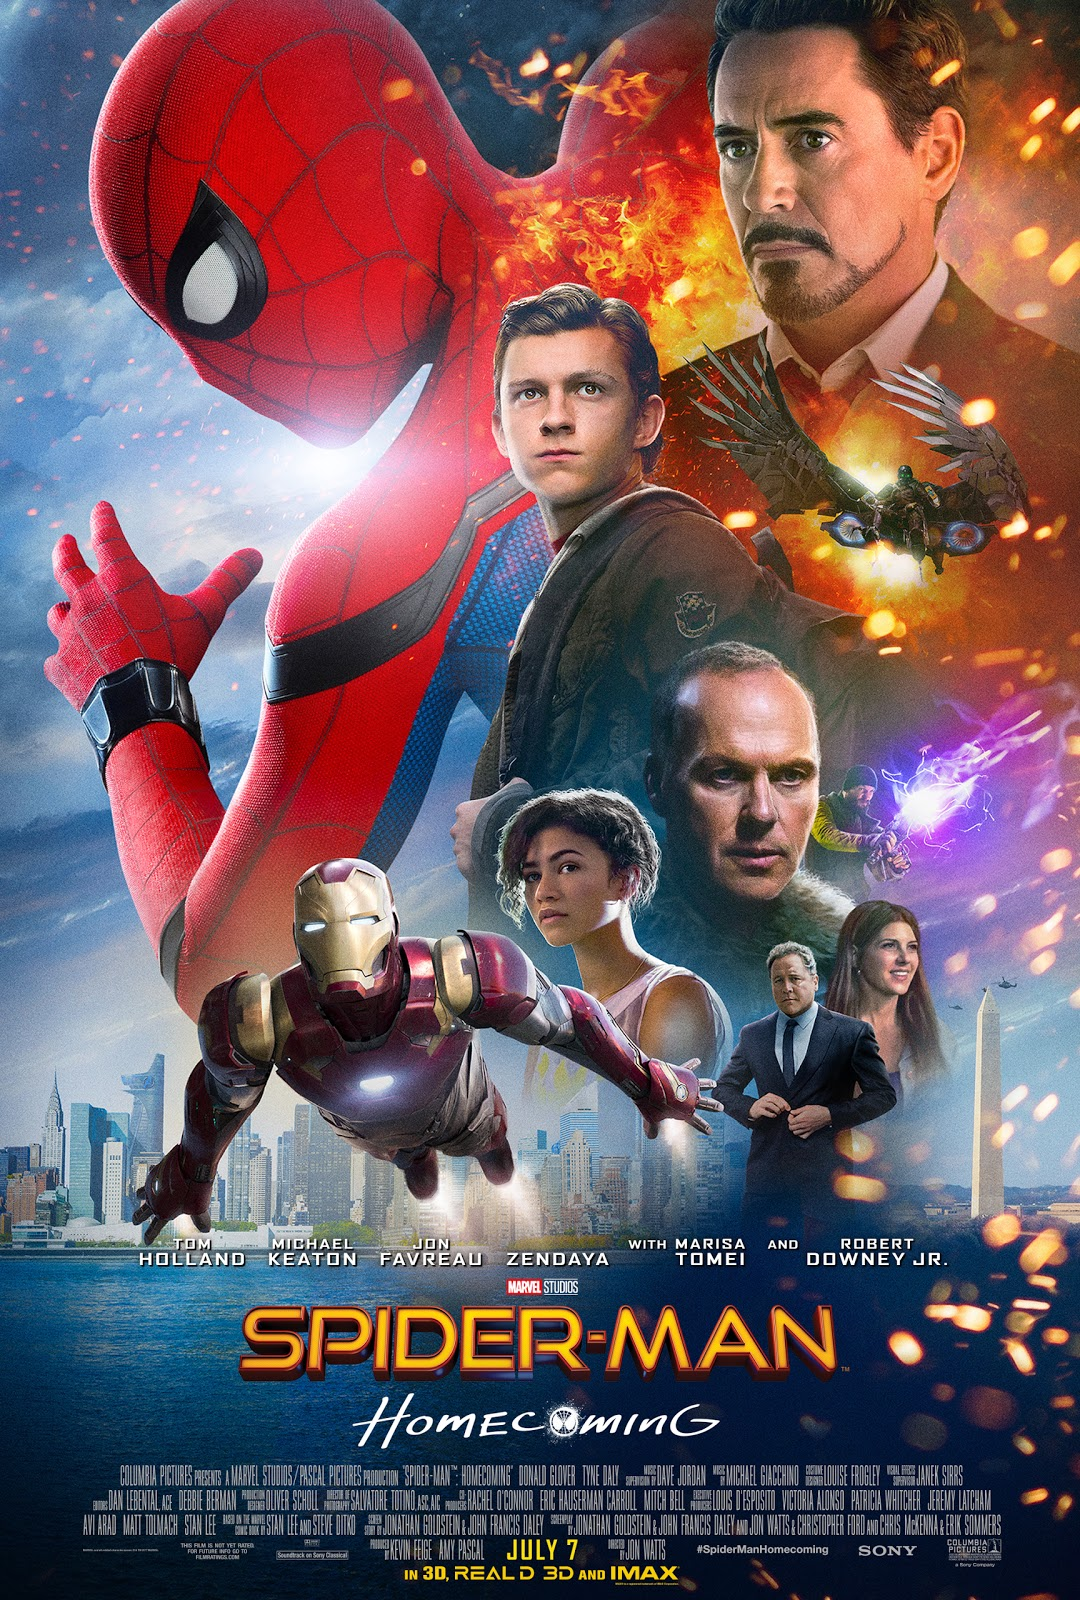 Spider-Man Homecoming poster